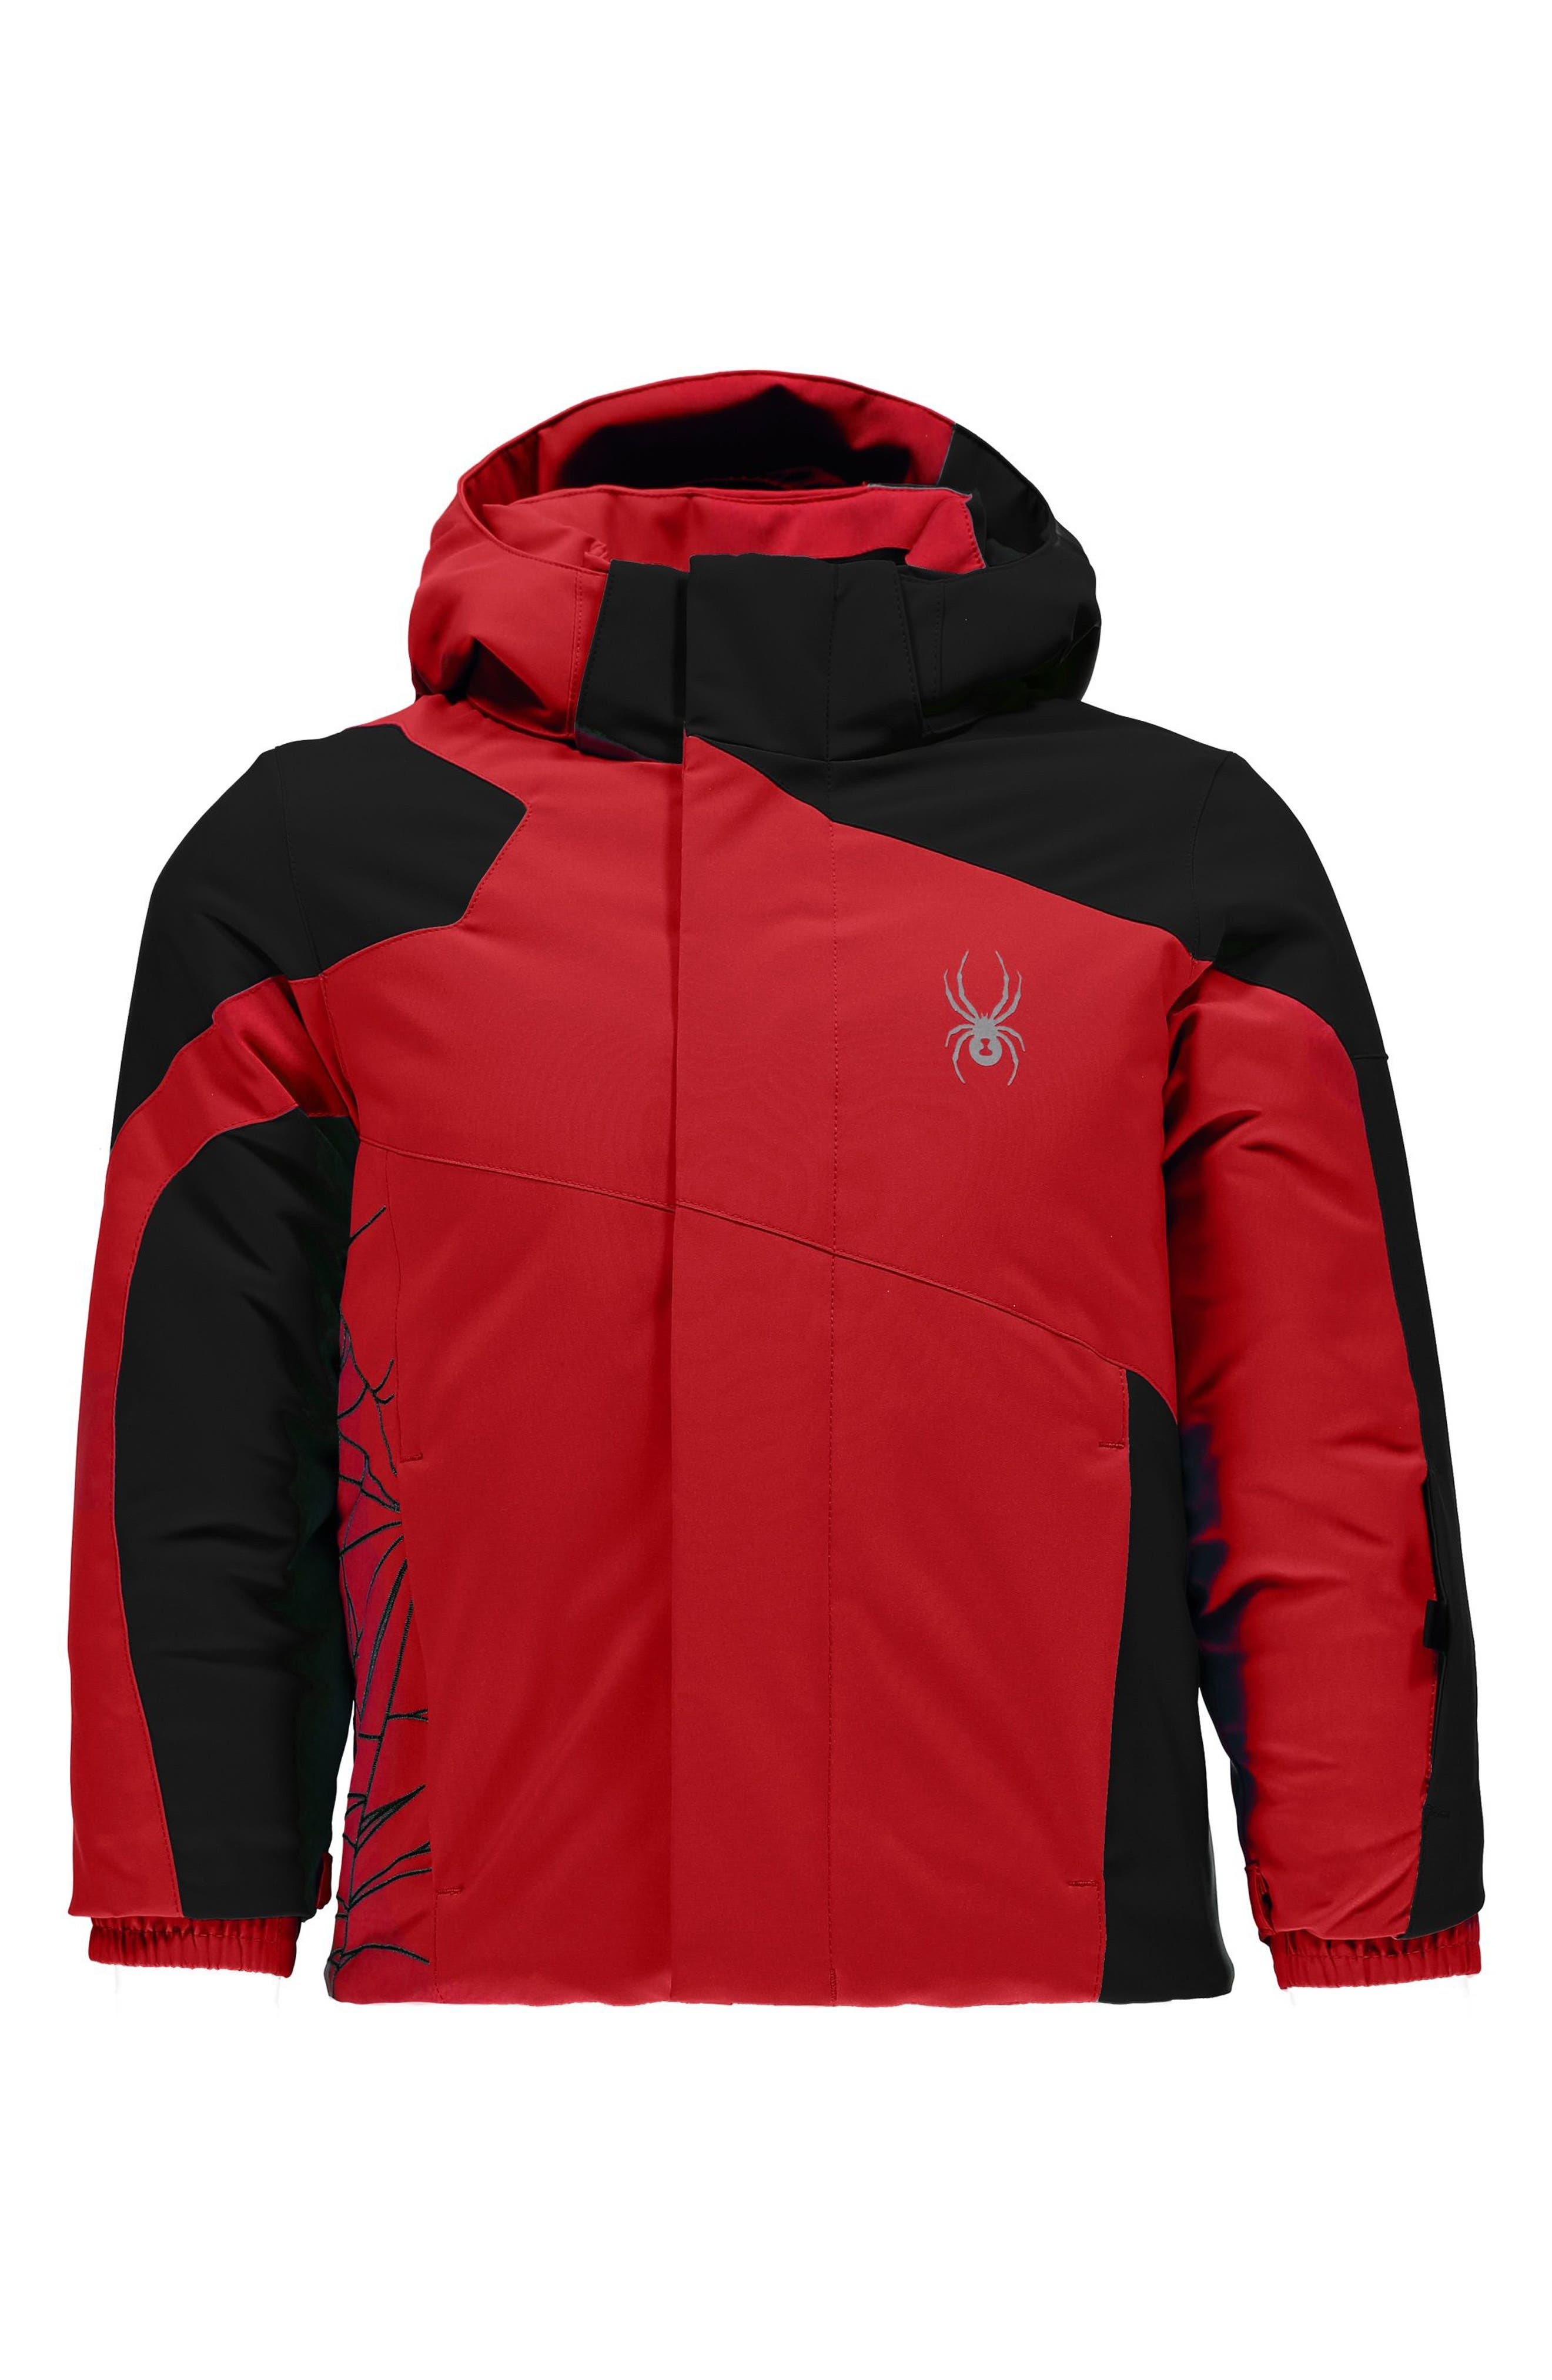 Mini Guard Insulated Waterproof Jacket,                         Main,                         color, Red/ Black